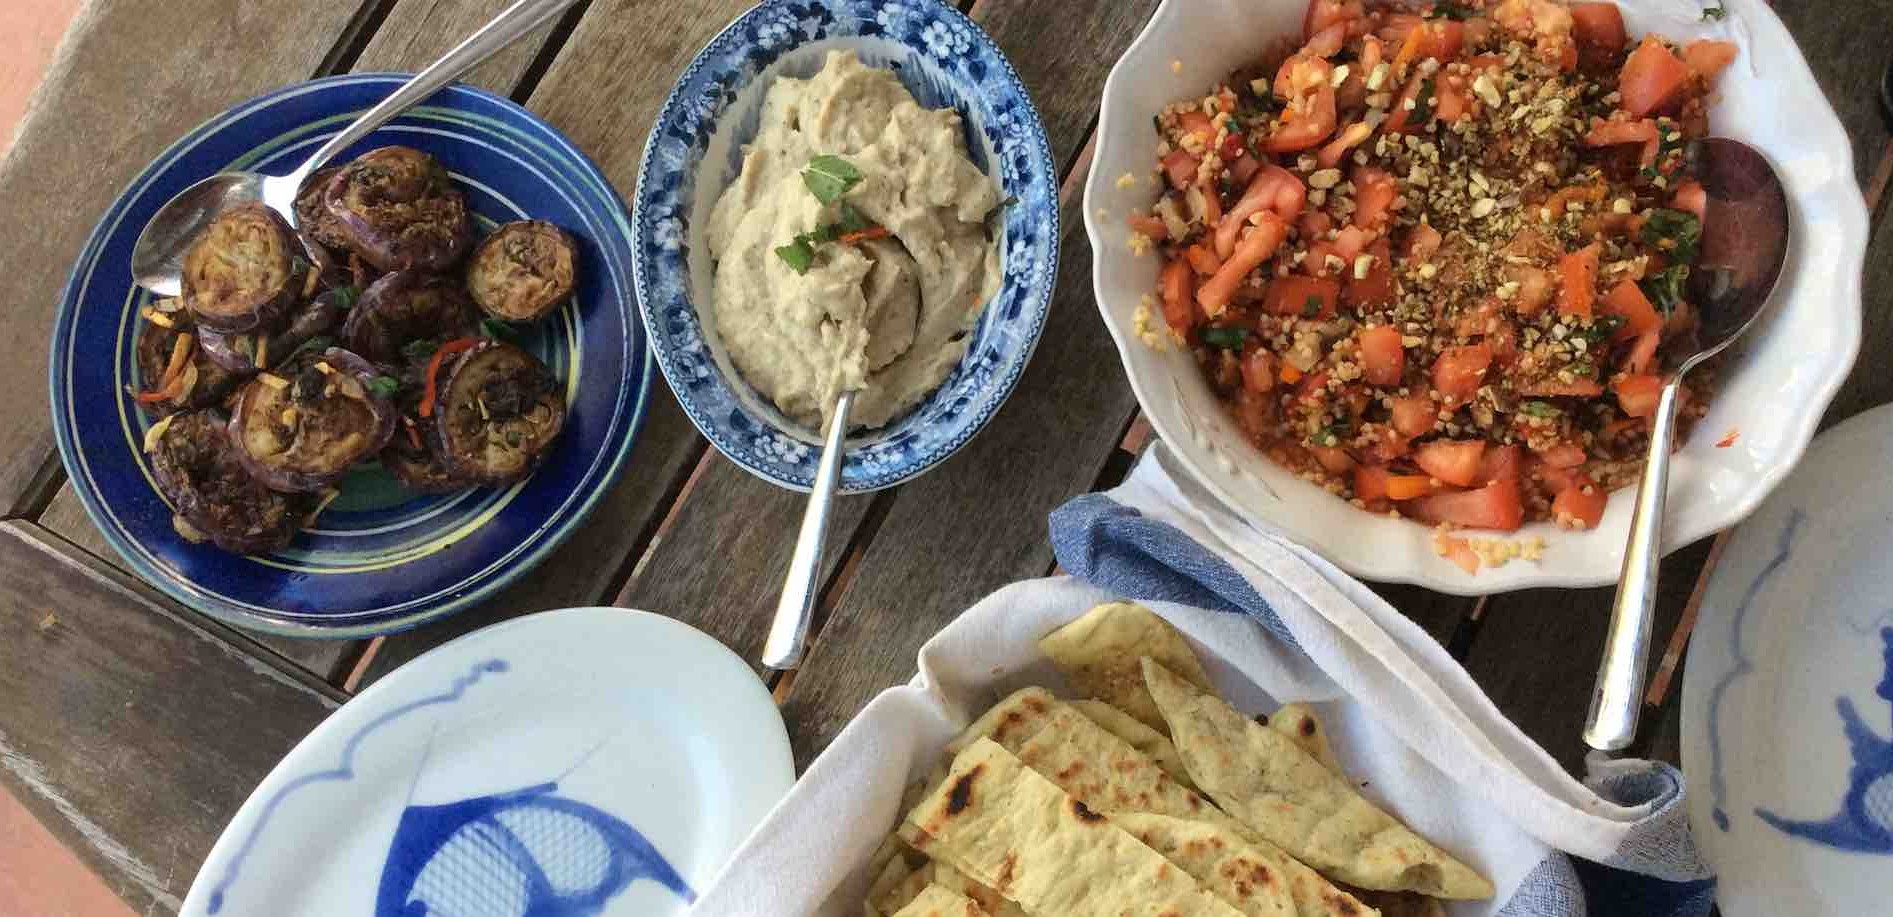 Vegan food at Almond Hill House, Andalucia, Spain